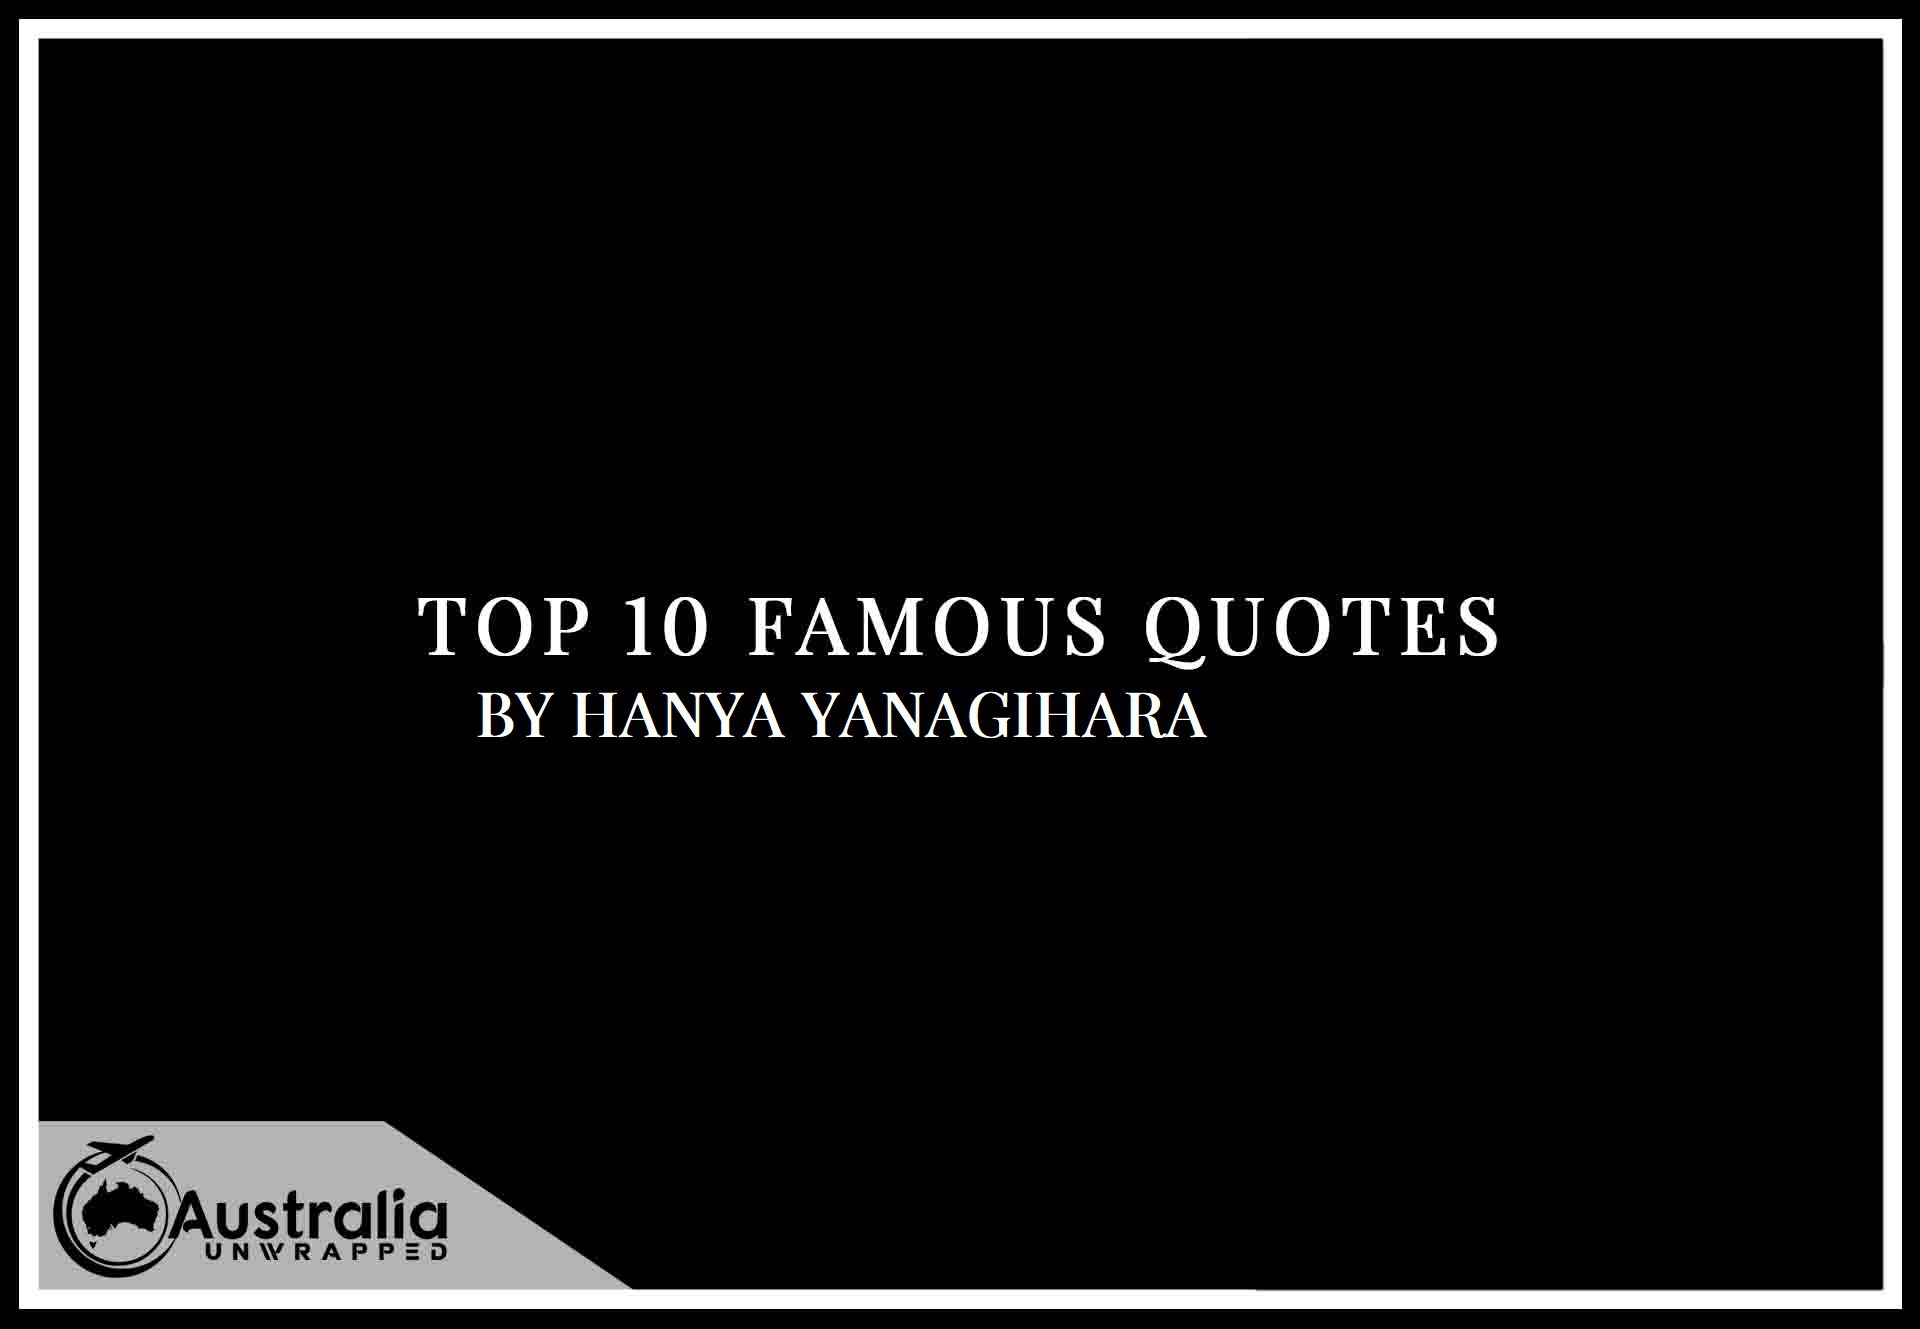 Top 10 Famous Quotes by Author Hanya Yanagihara